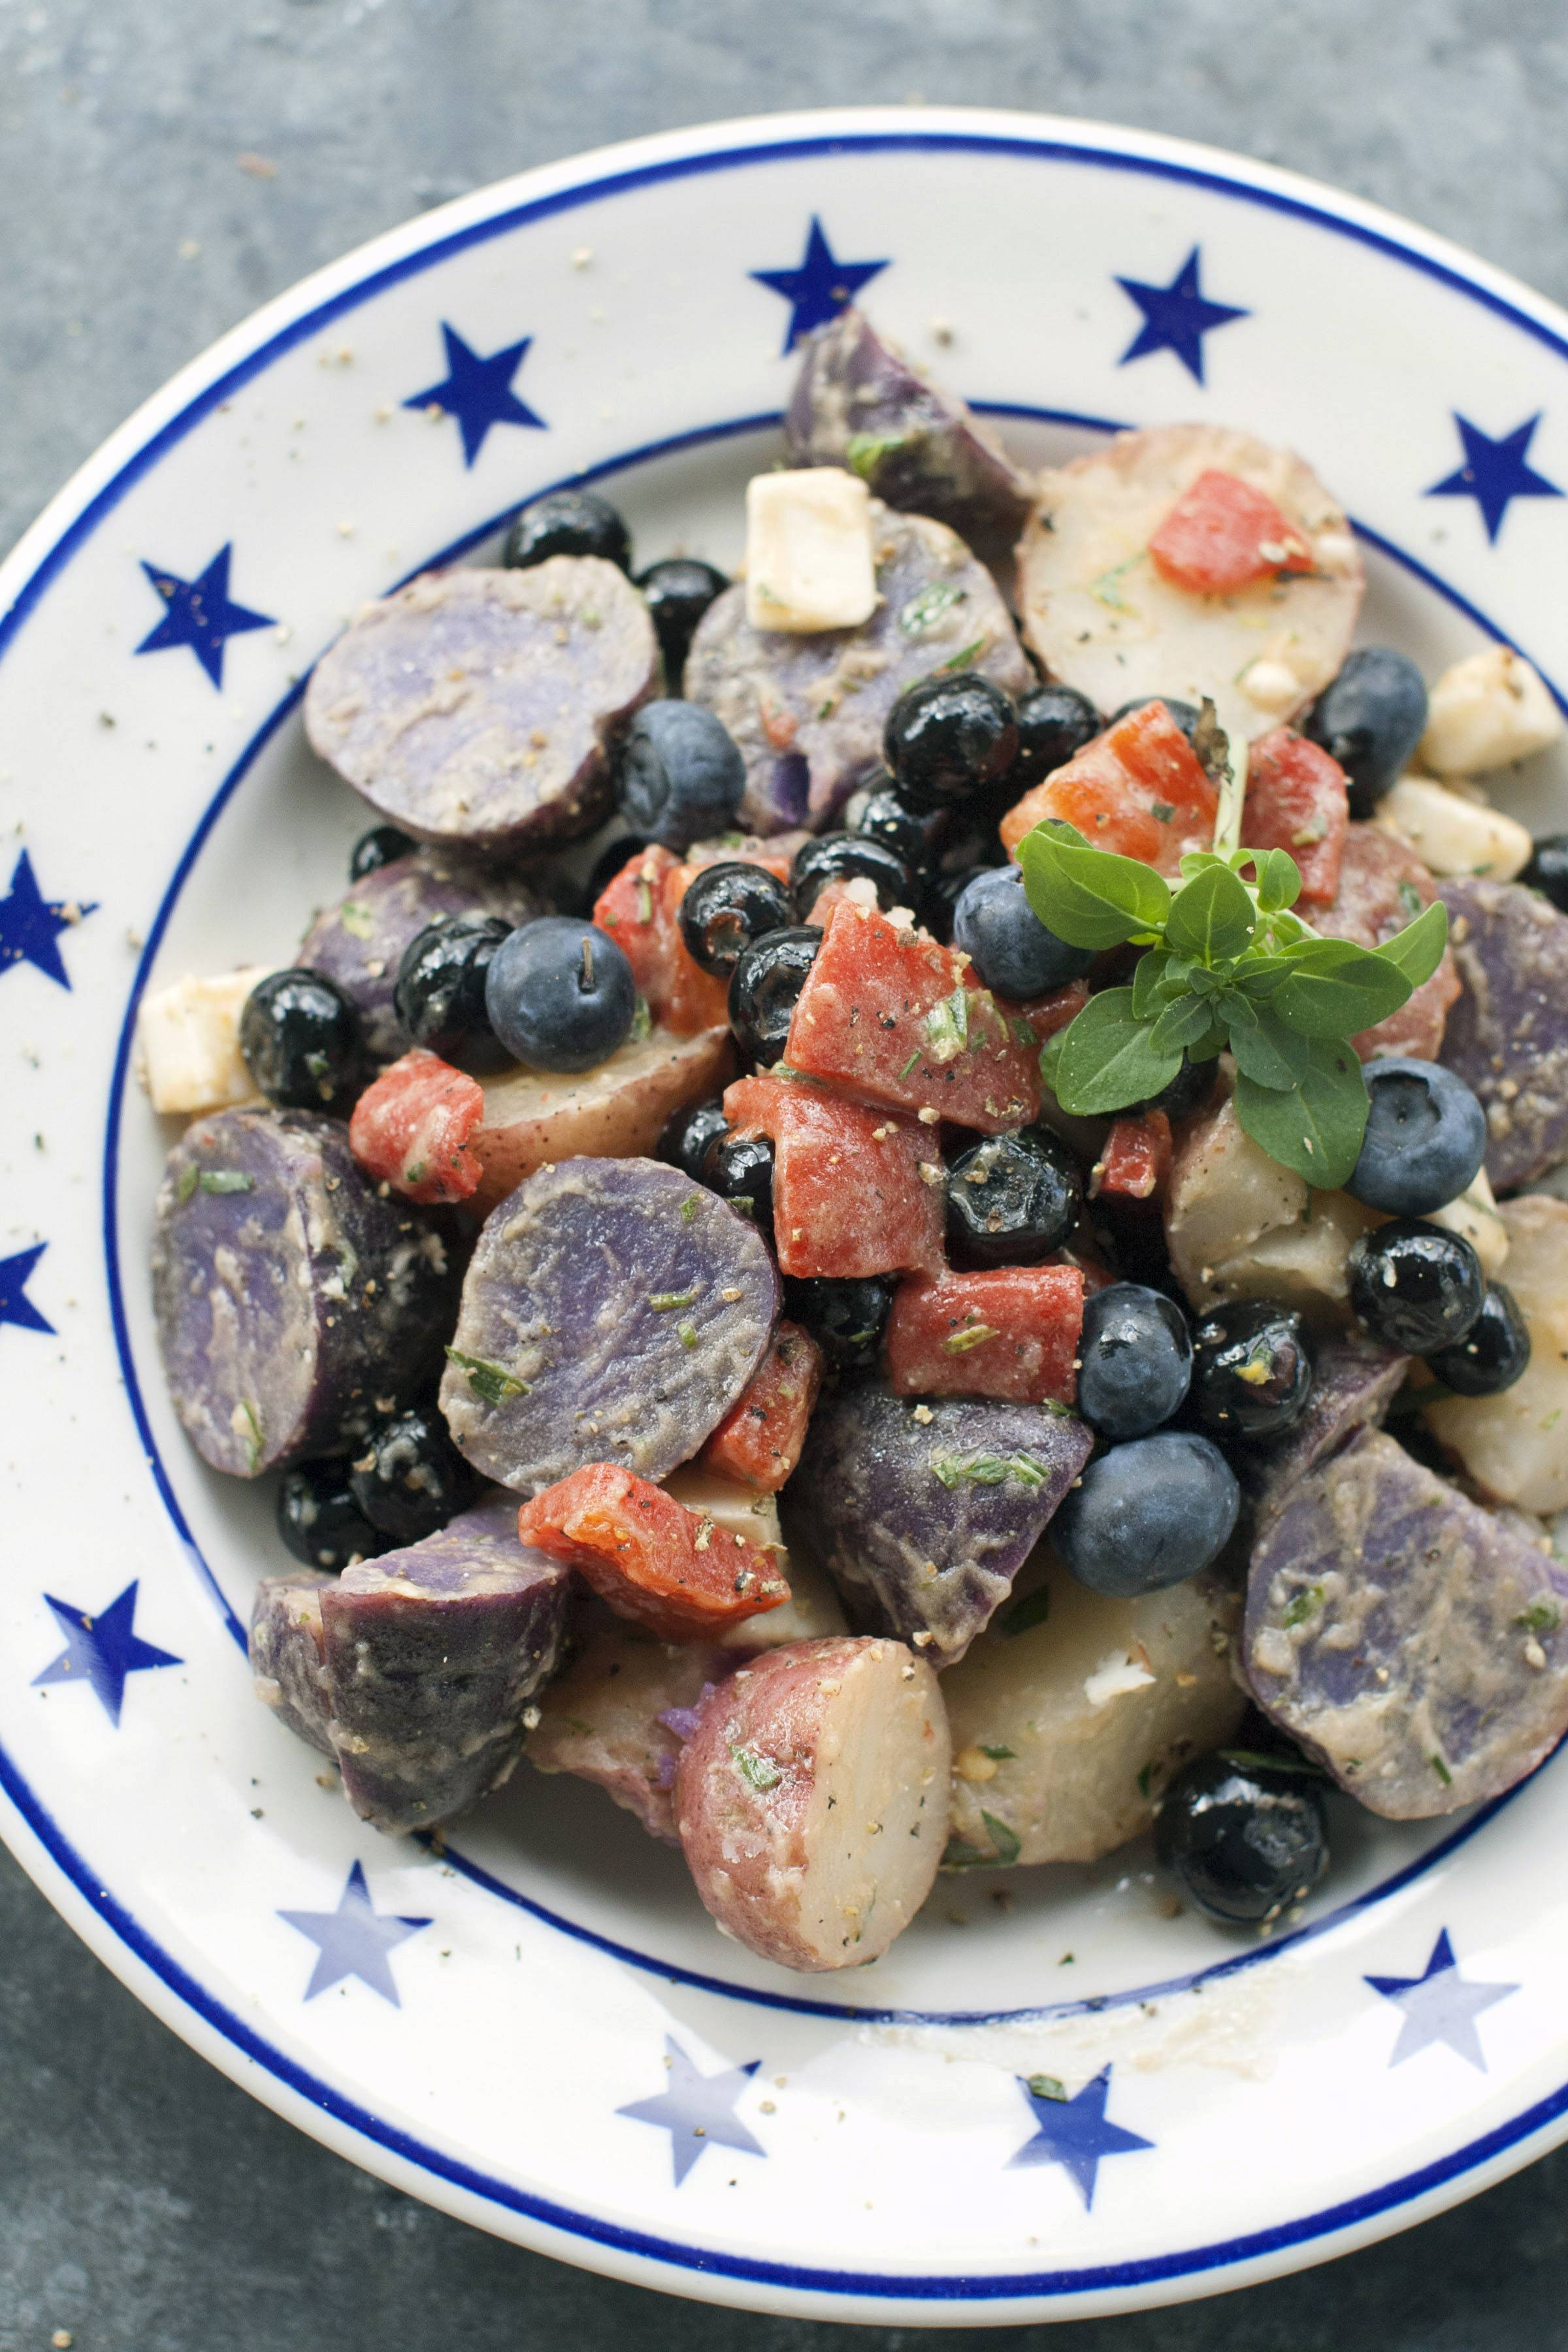 Red and purple potatoes, roasted red peppers, cubes of white goat cheese and several cups of blueberries provide patriotic colors that reflect the spirit of the Fourth of July holiday.